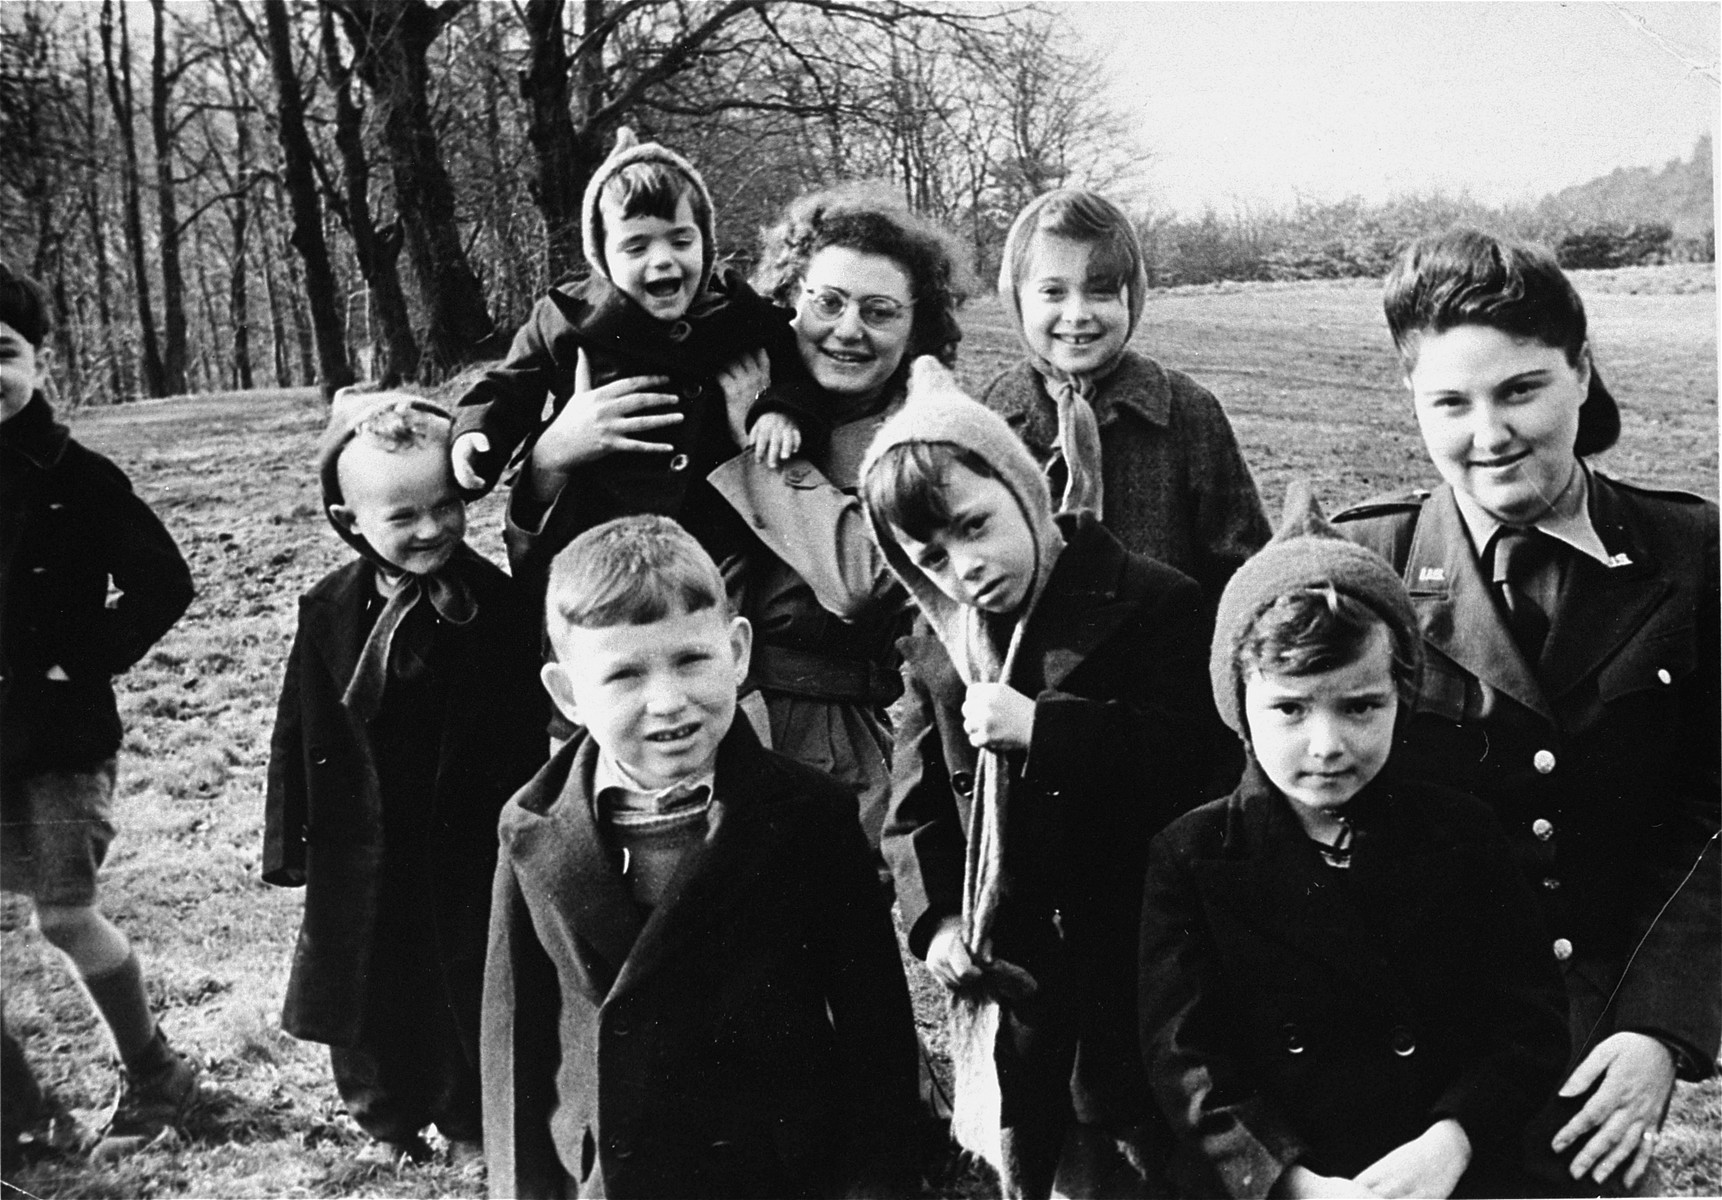 Orphans from Warburg children's home pose outside with JDC relief workers.     Pictured at the far right is Sally Bendremer; Hilde Jacobstahl holds the child in the center. The boy walking out of the picture on the far left is Peter Salomon (Peter Ruben Lewkowitz) now known as Yiphtach Ronen.